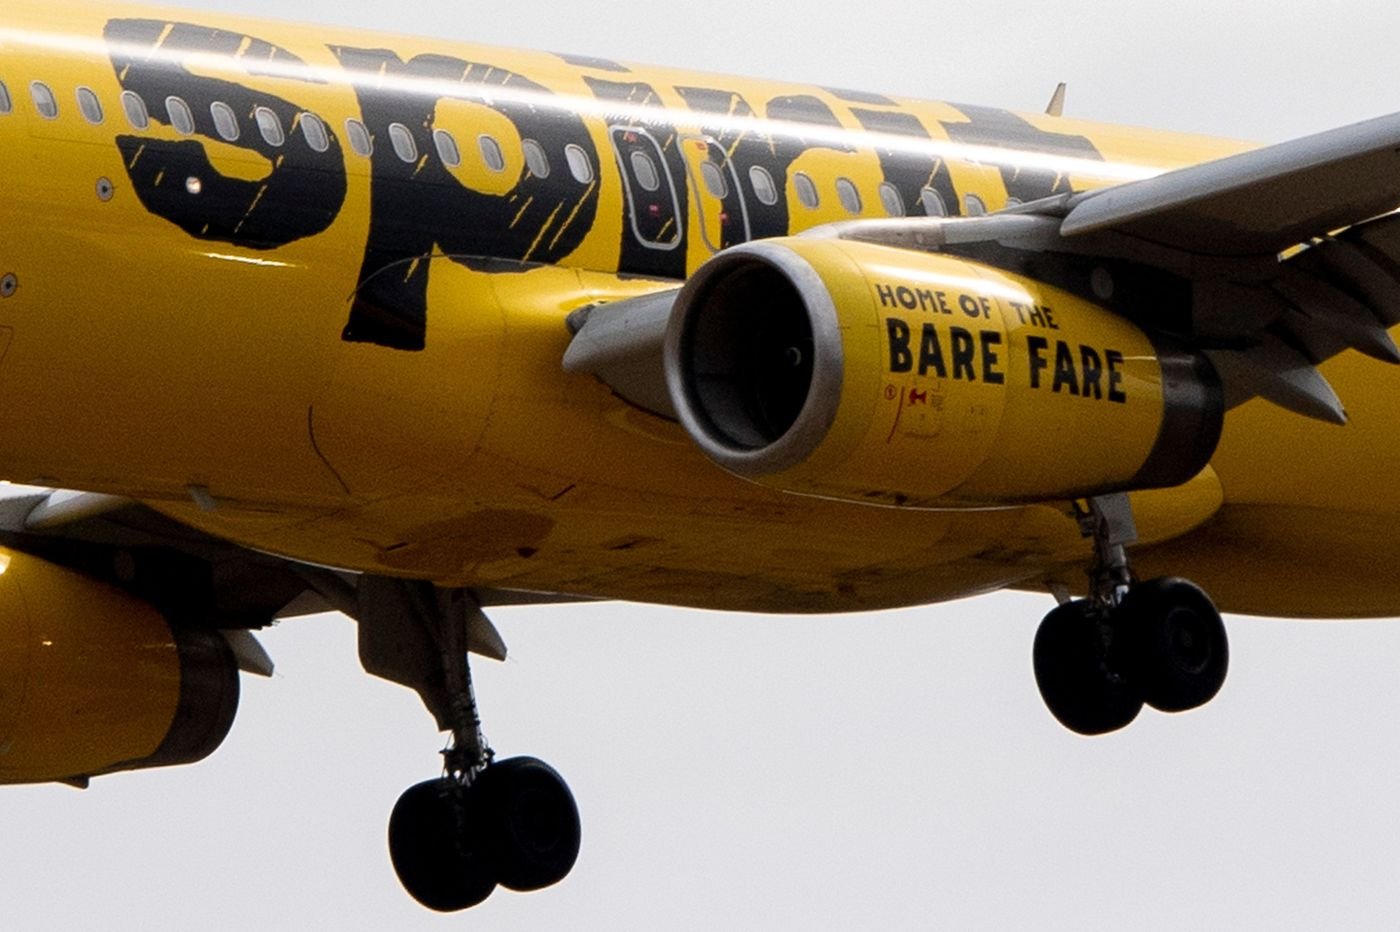 3 Philly women charged with assault for attack on Spirit Airlines employees over delayed flight